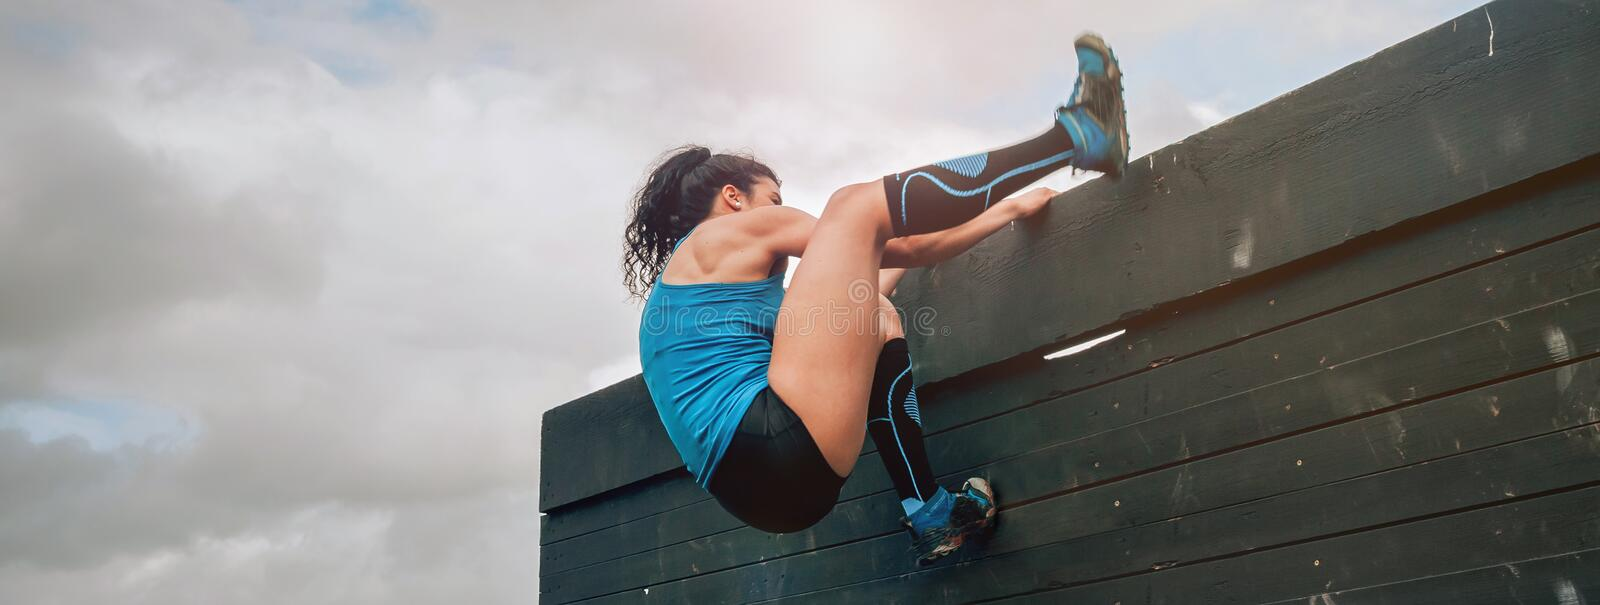 Participant in obstacle course climbing wall. Female participant in an obstacle course climbing a wall royalty free stock photography